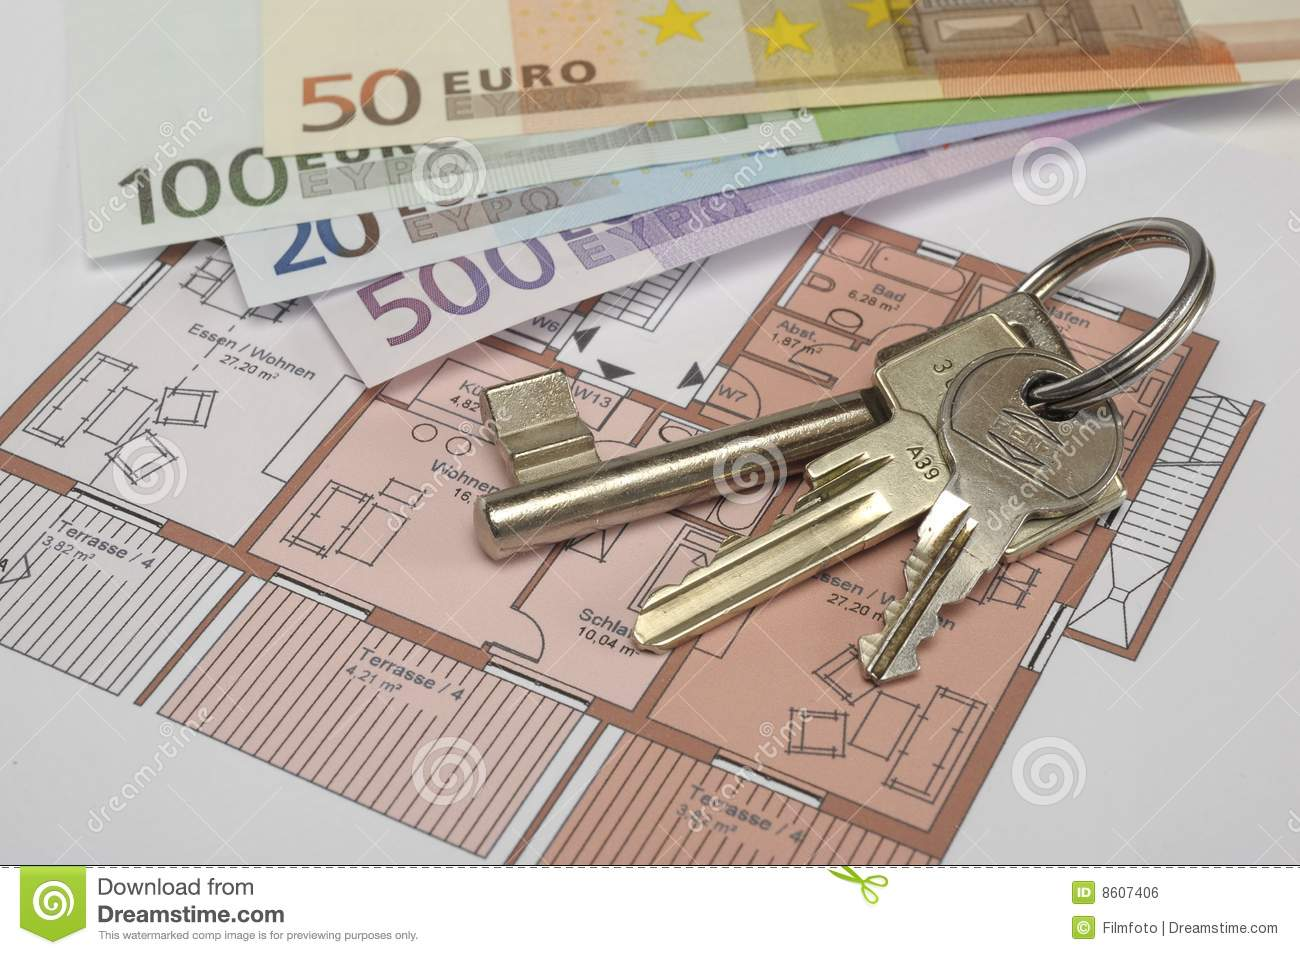 Building plan with keys and money royalty free stock image for Free money to build a house